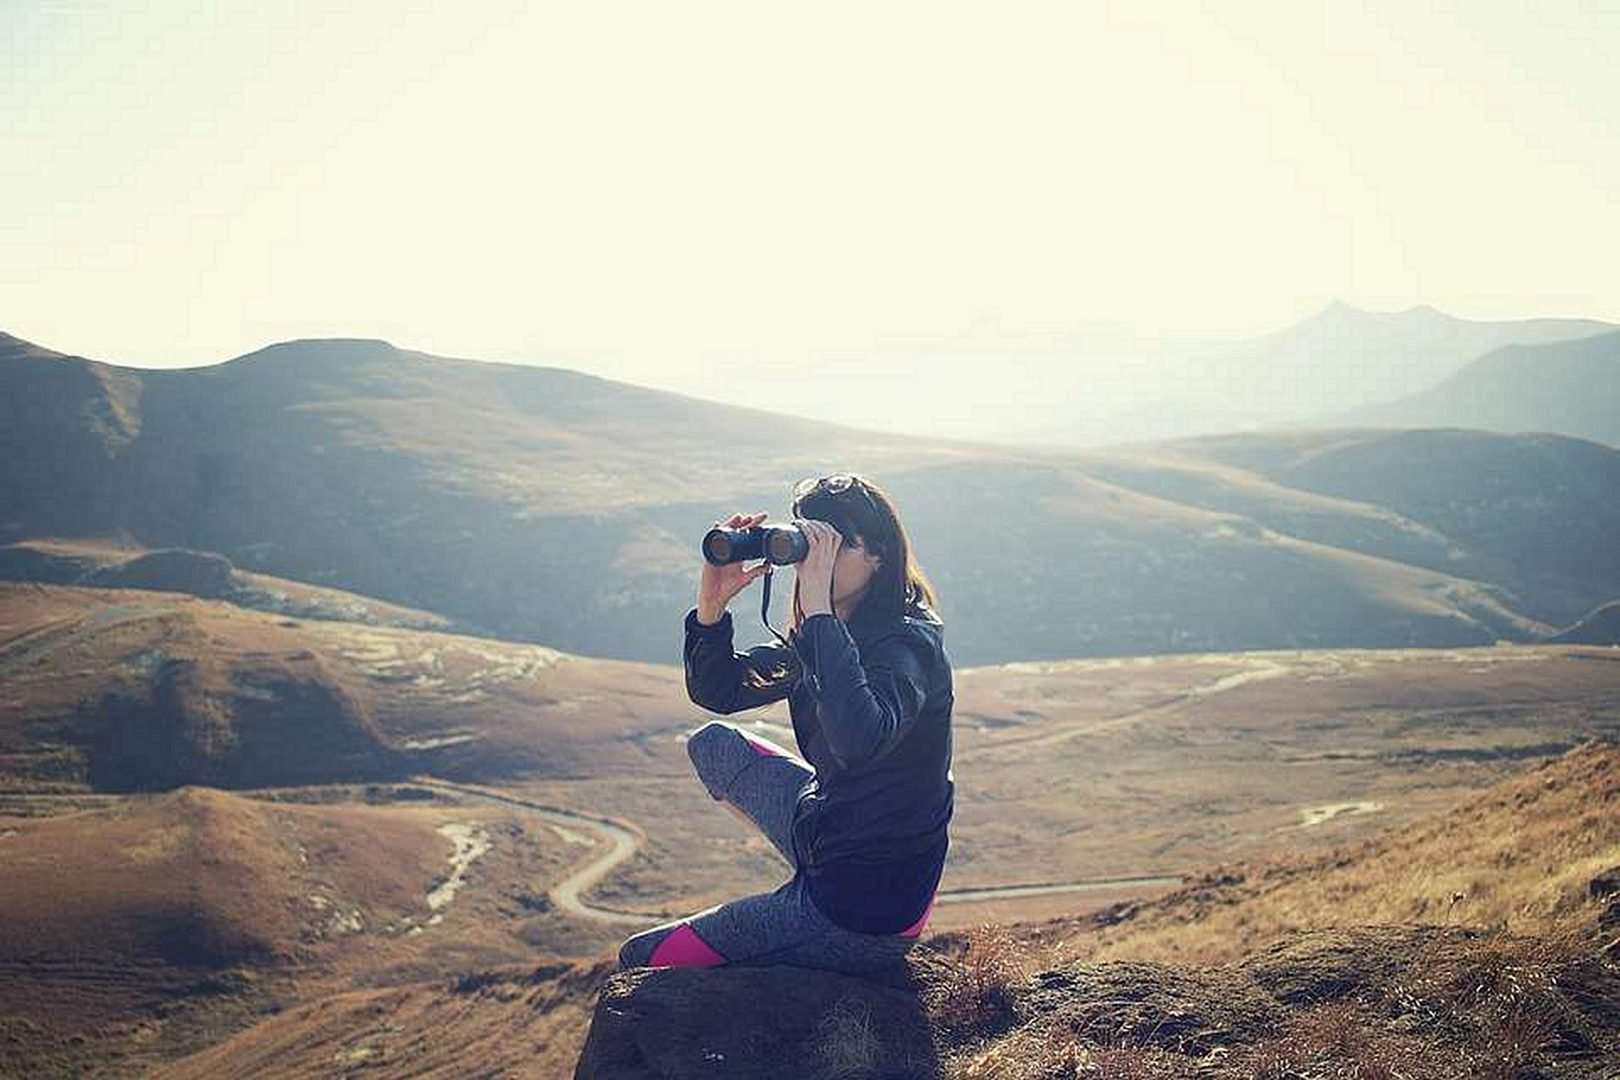 woman with binoculars in the mountains Best Budget Binoculars Under $100